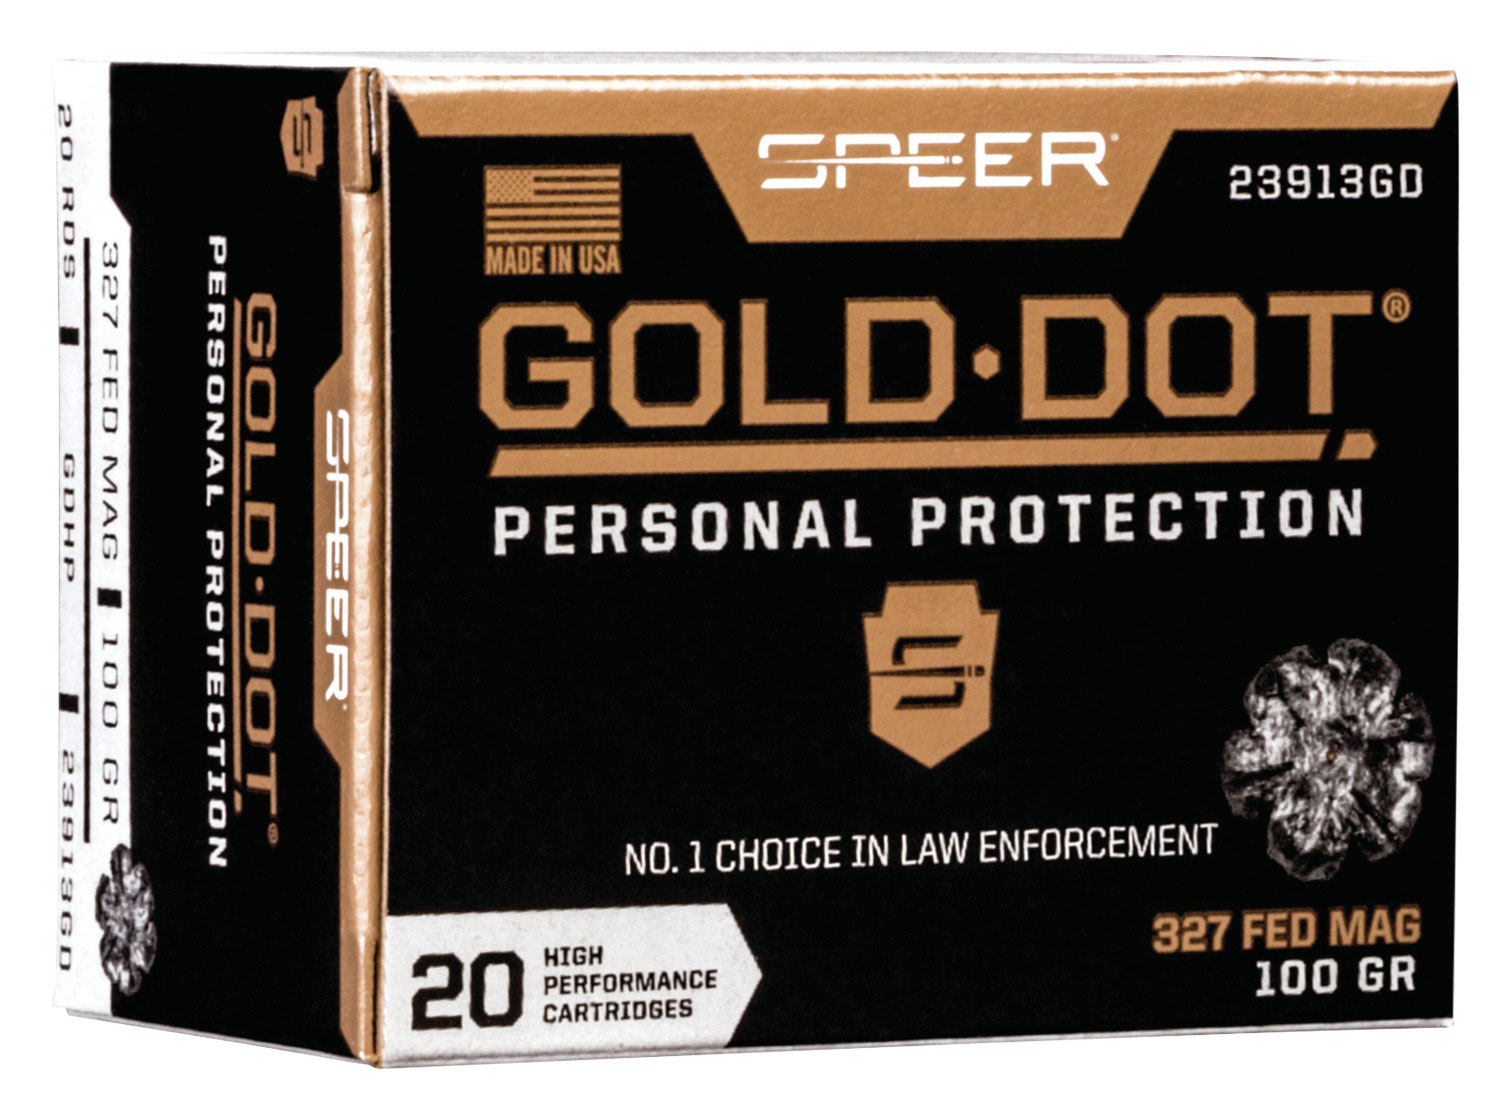 Speer Ammo 23913GD Gold Dot Personal Protection  327 Federal Magnum 100 GR Hollow Point 20 Bx/ 10 Cs